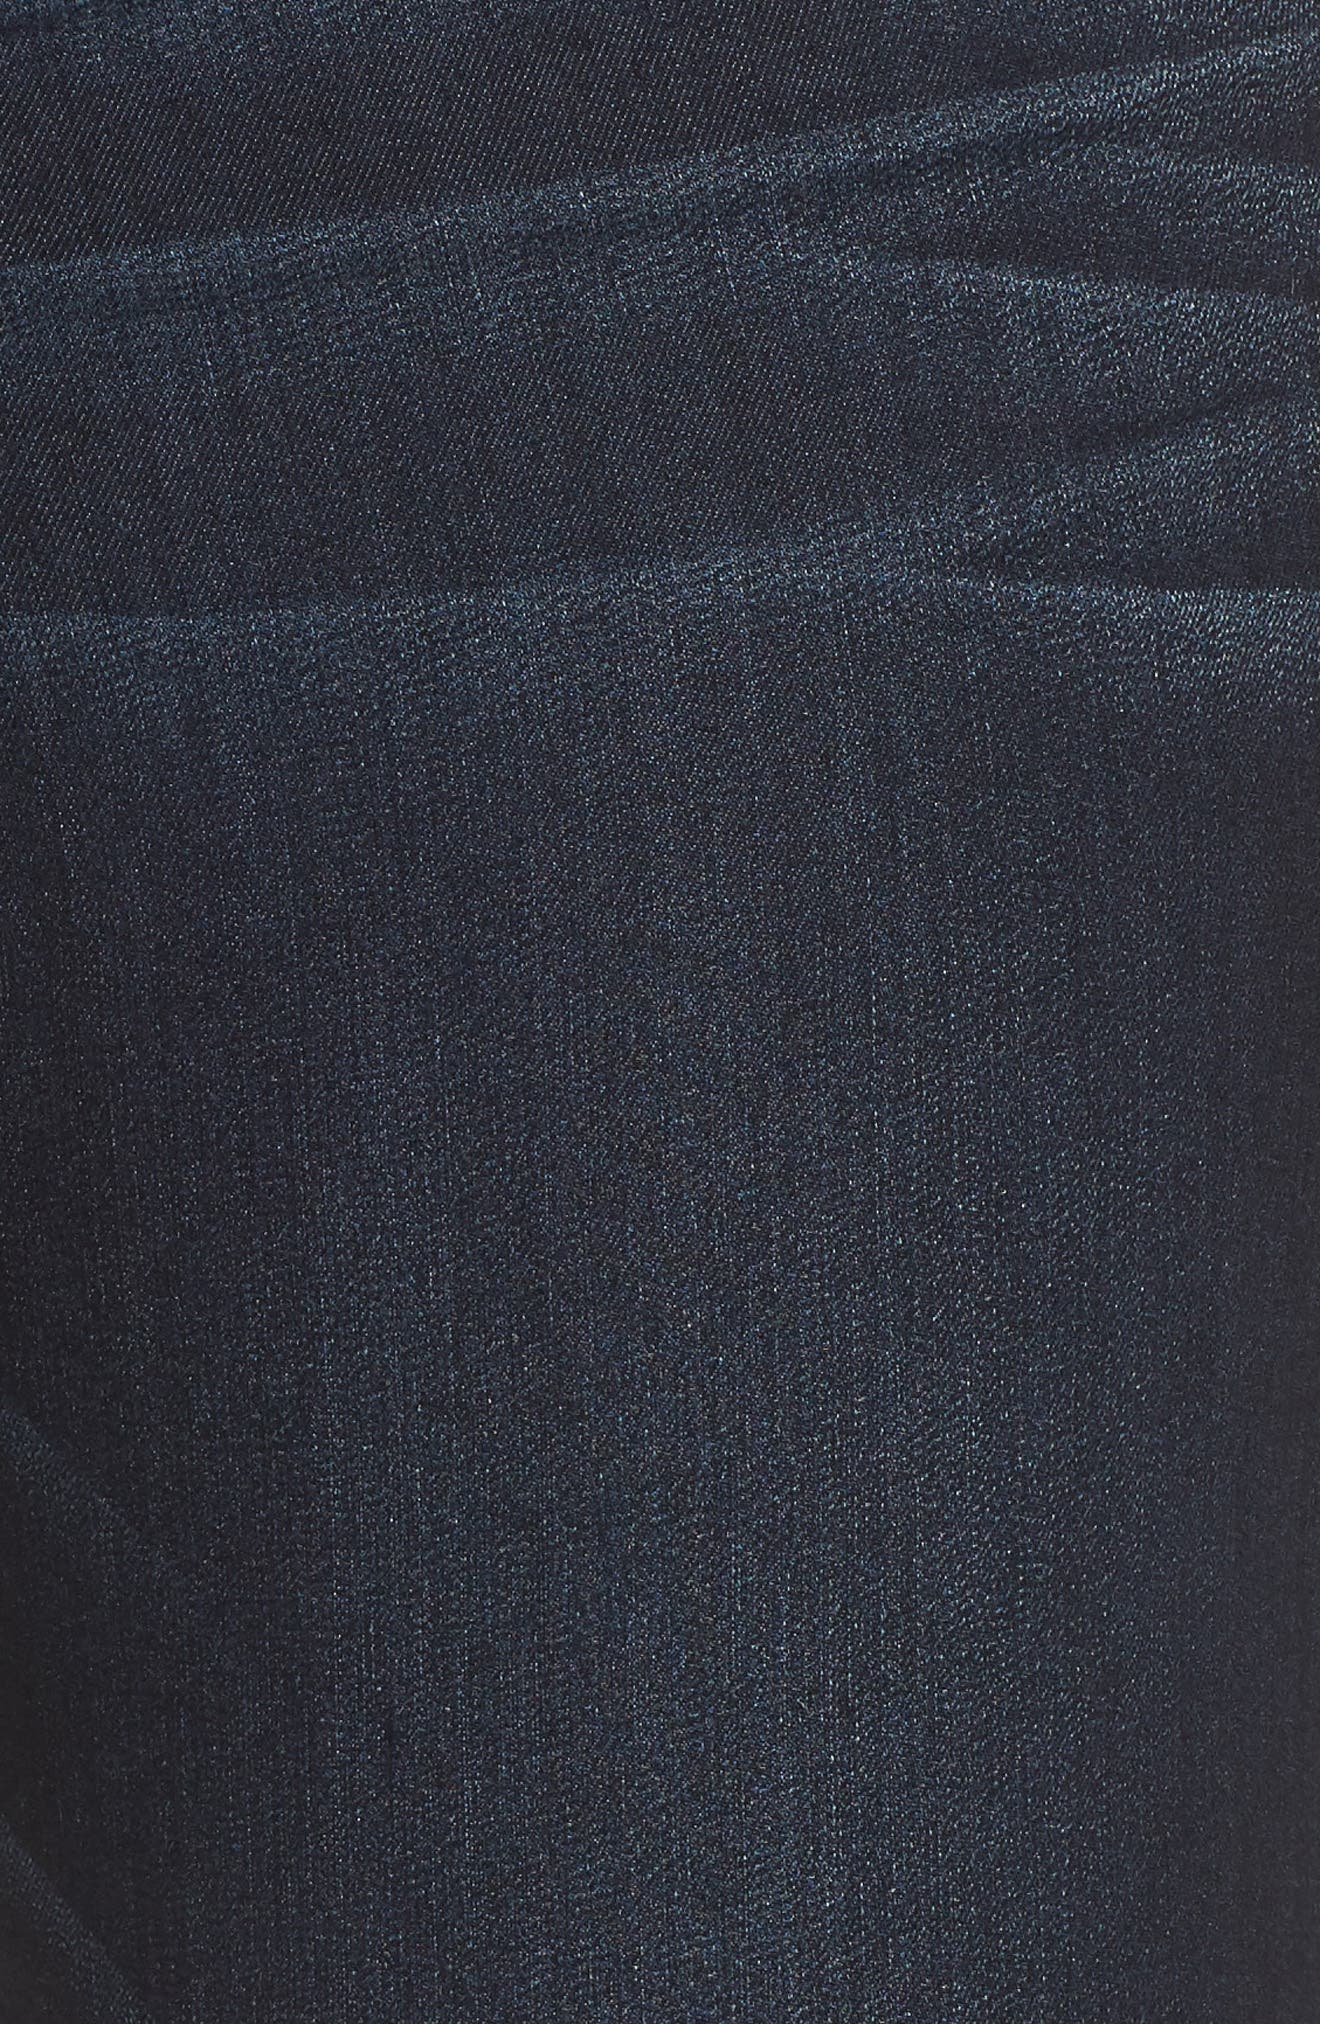 'Itty Bitty' Bootcut Jeans,                             Alternate thumbnail 6, color,                             INDIGO